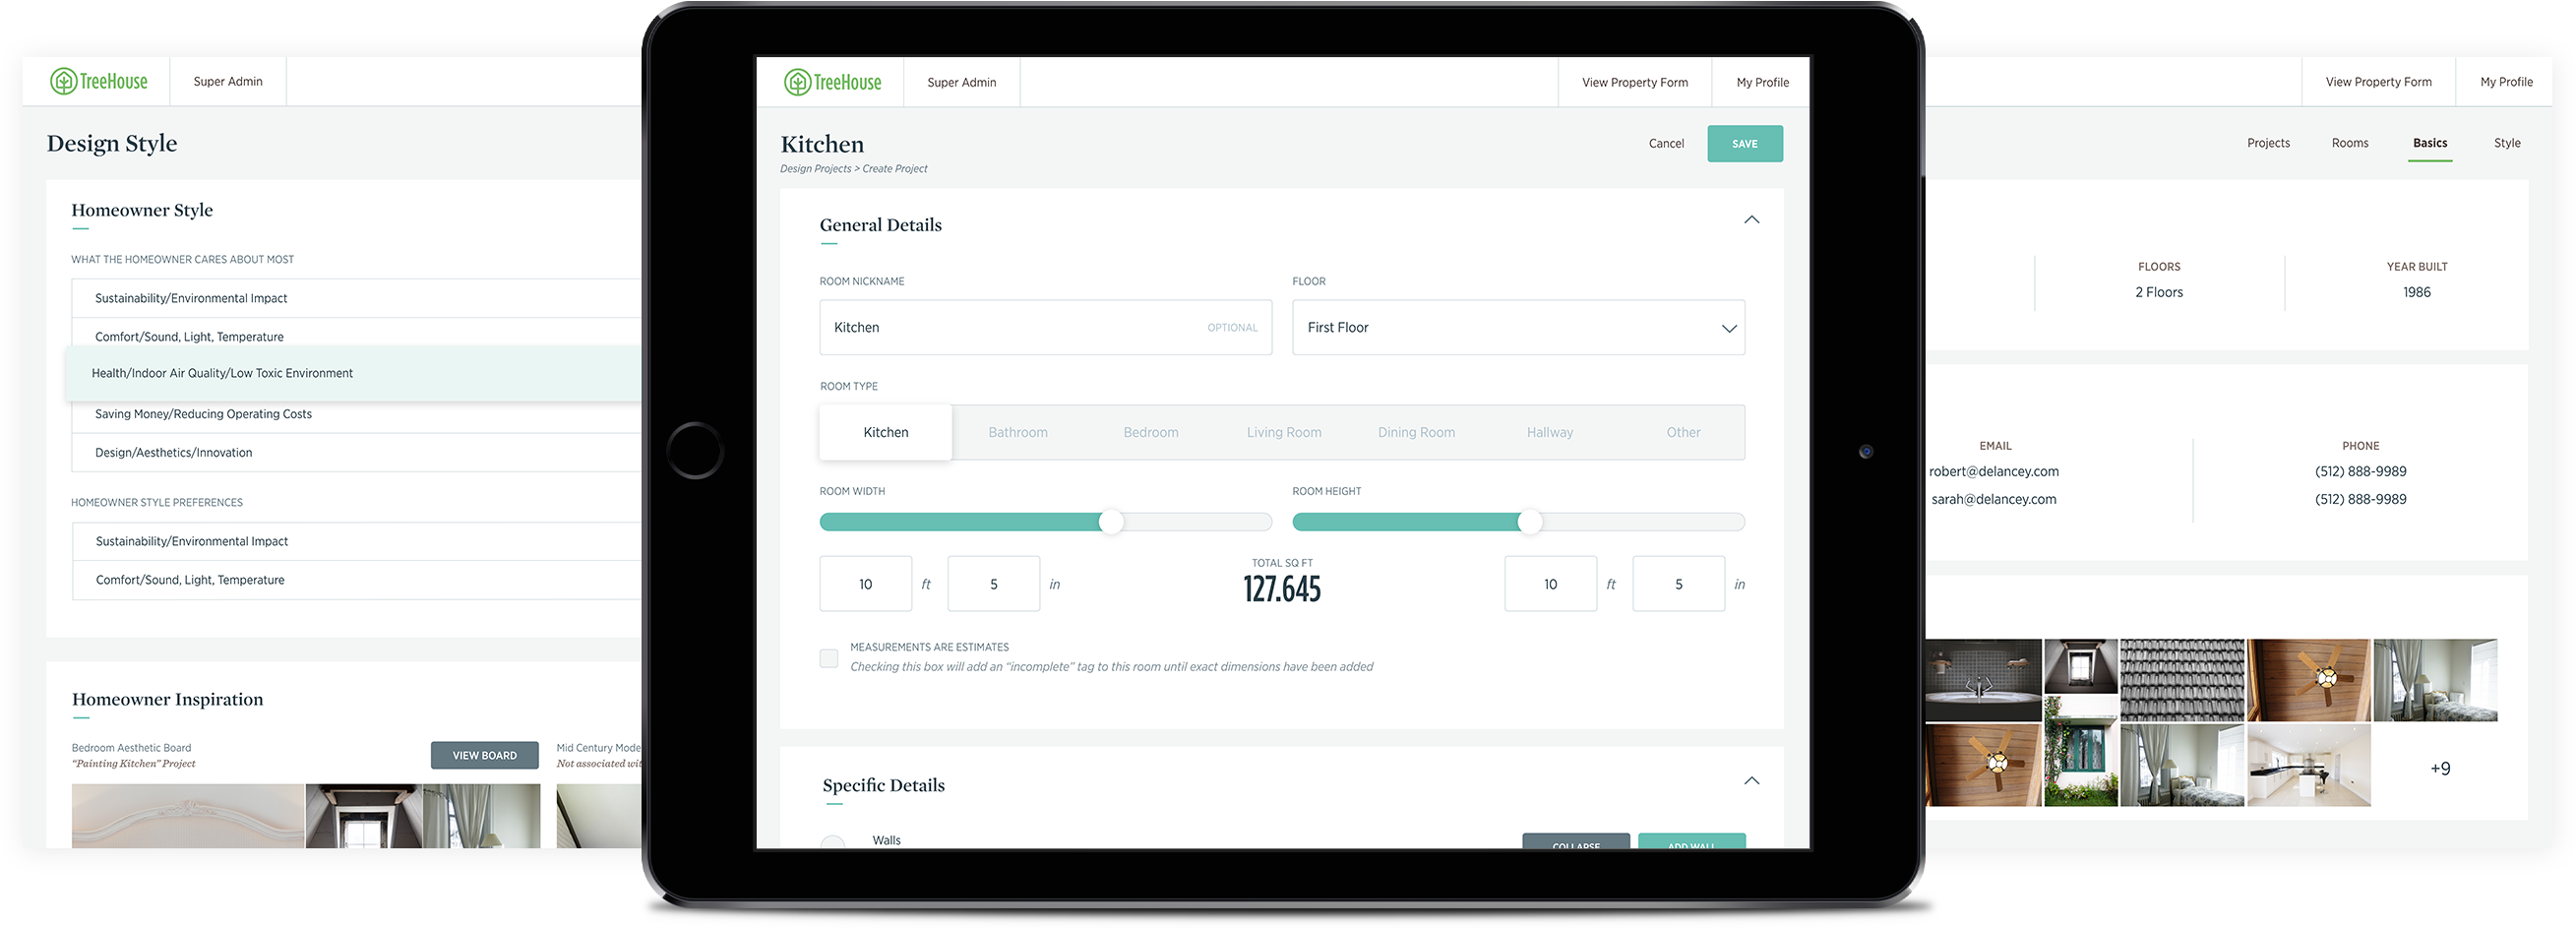 Treehouse A Ux Case Study How Sealab Helped Create A By Cal Sealab Life